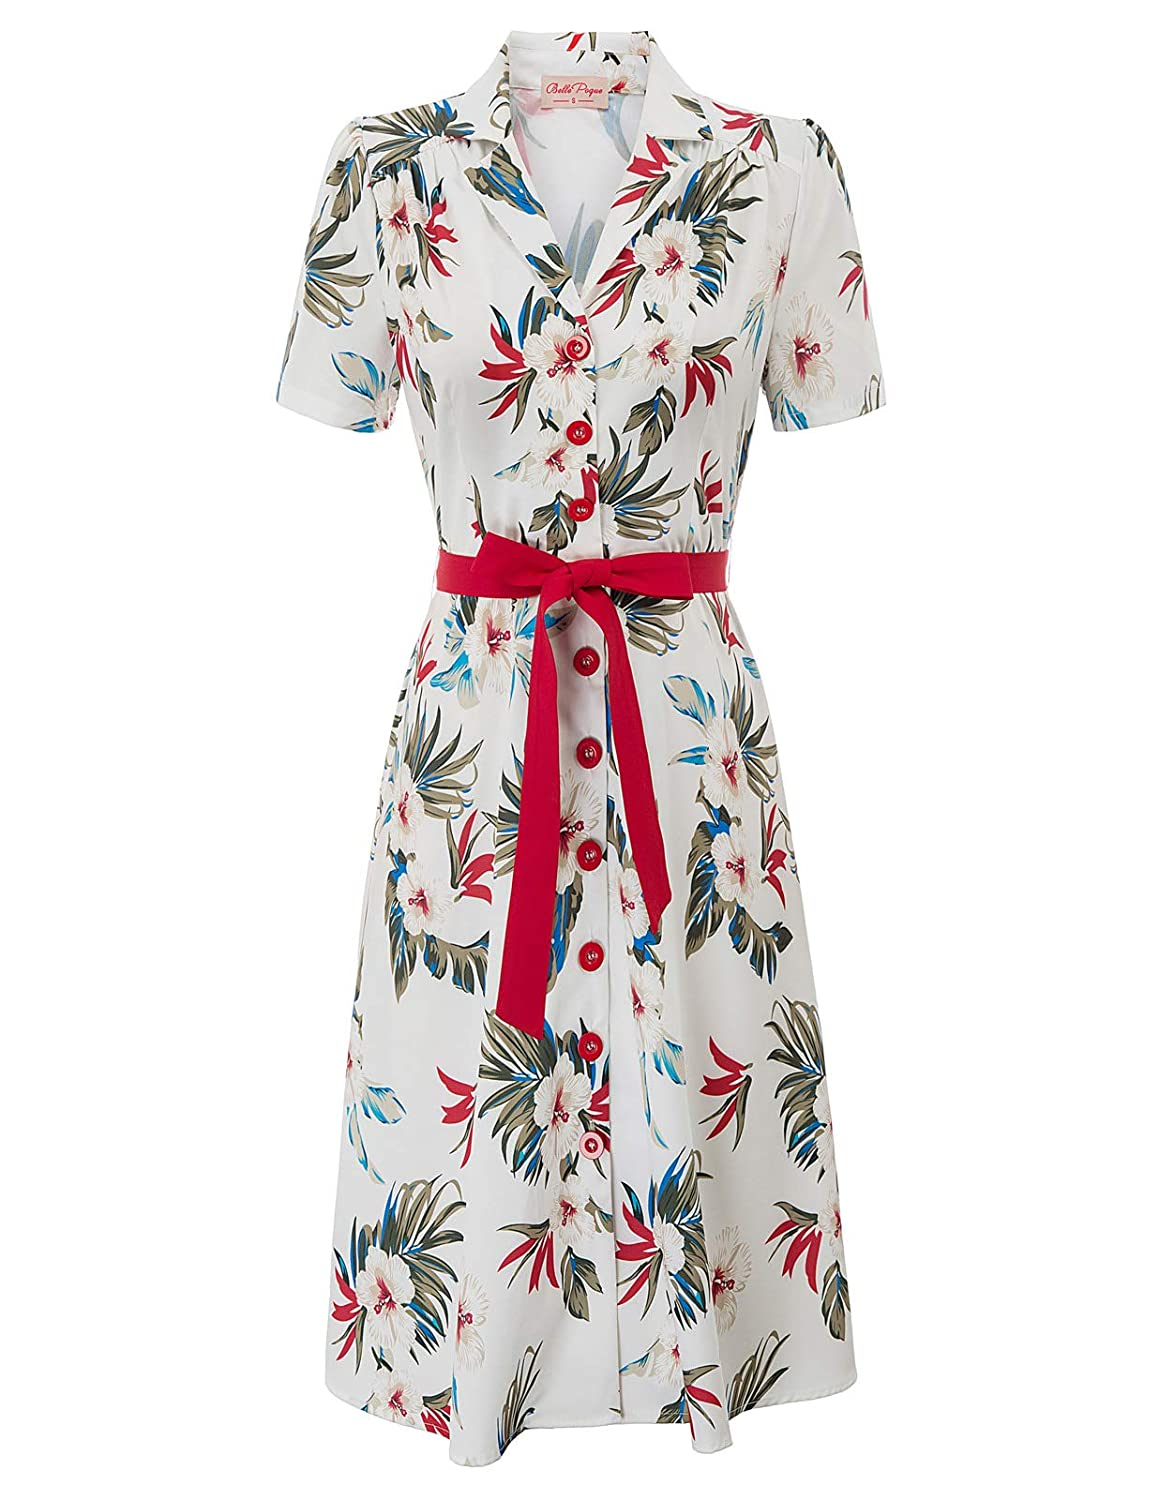 1940s Fashion Advice for Tall Women Belle Poque Women Vintage Floral Print Midi Dress 1950s Tea Dress with Belt BP878 $27.99 AT vintagedancer.com